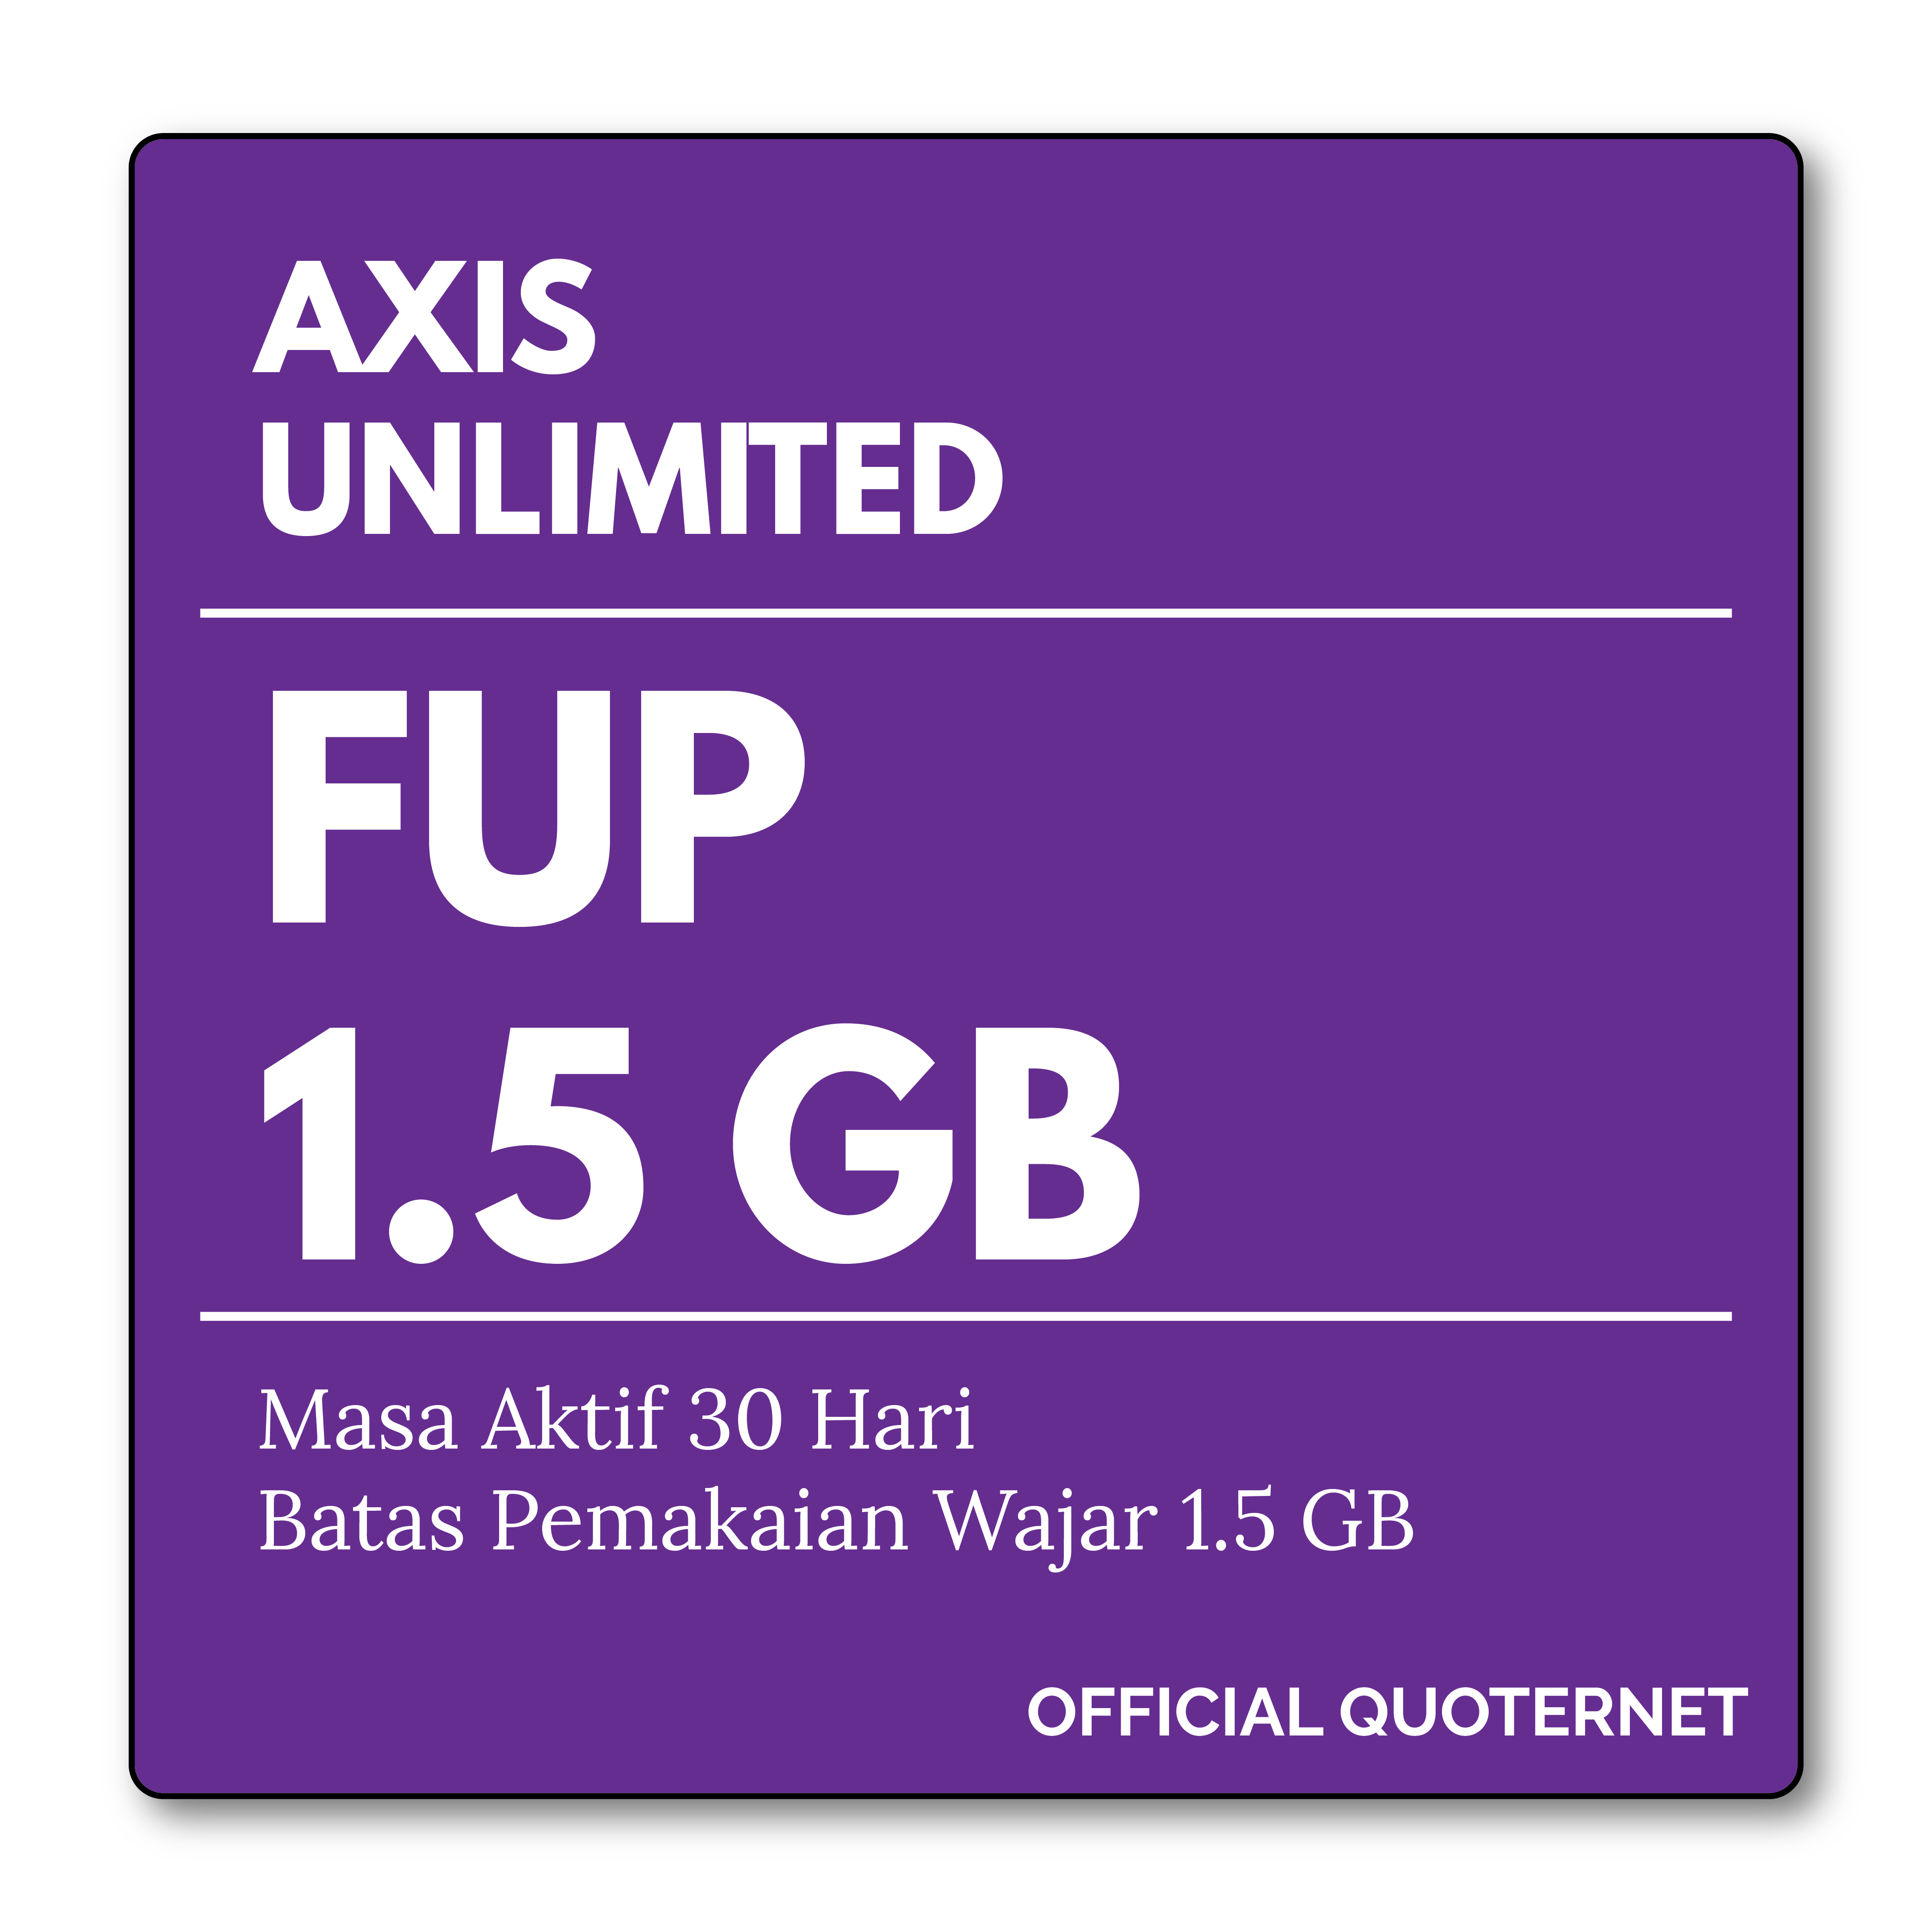 Quoternet Shop Line Xl Data Hodrod Rp 100000 Kuota Internet Axis Unlimited Fup 15 Gb